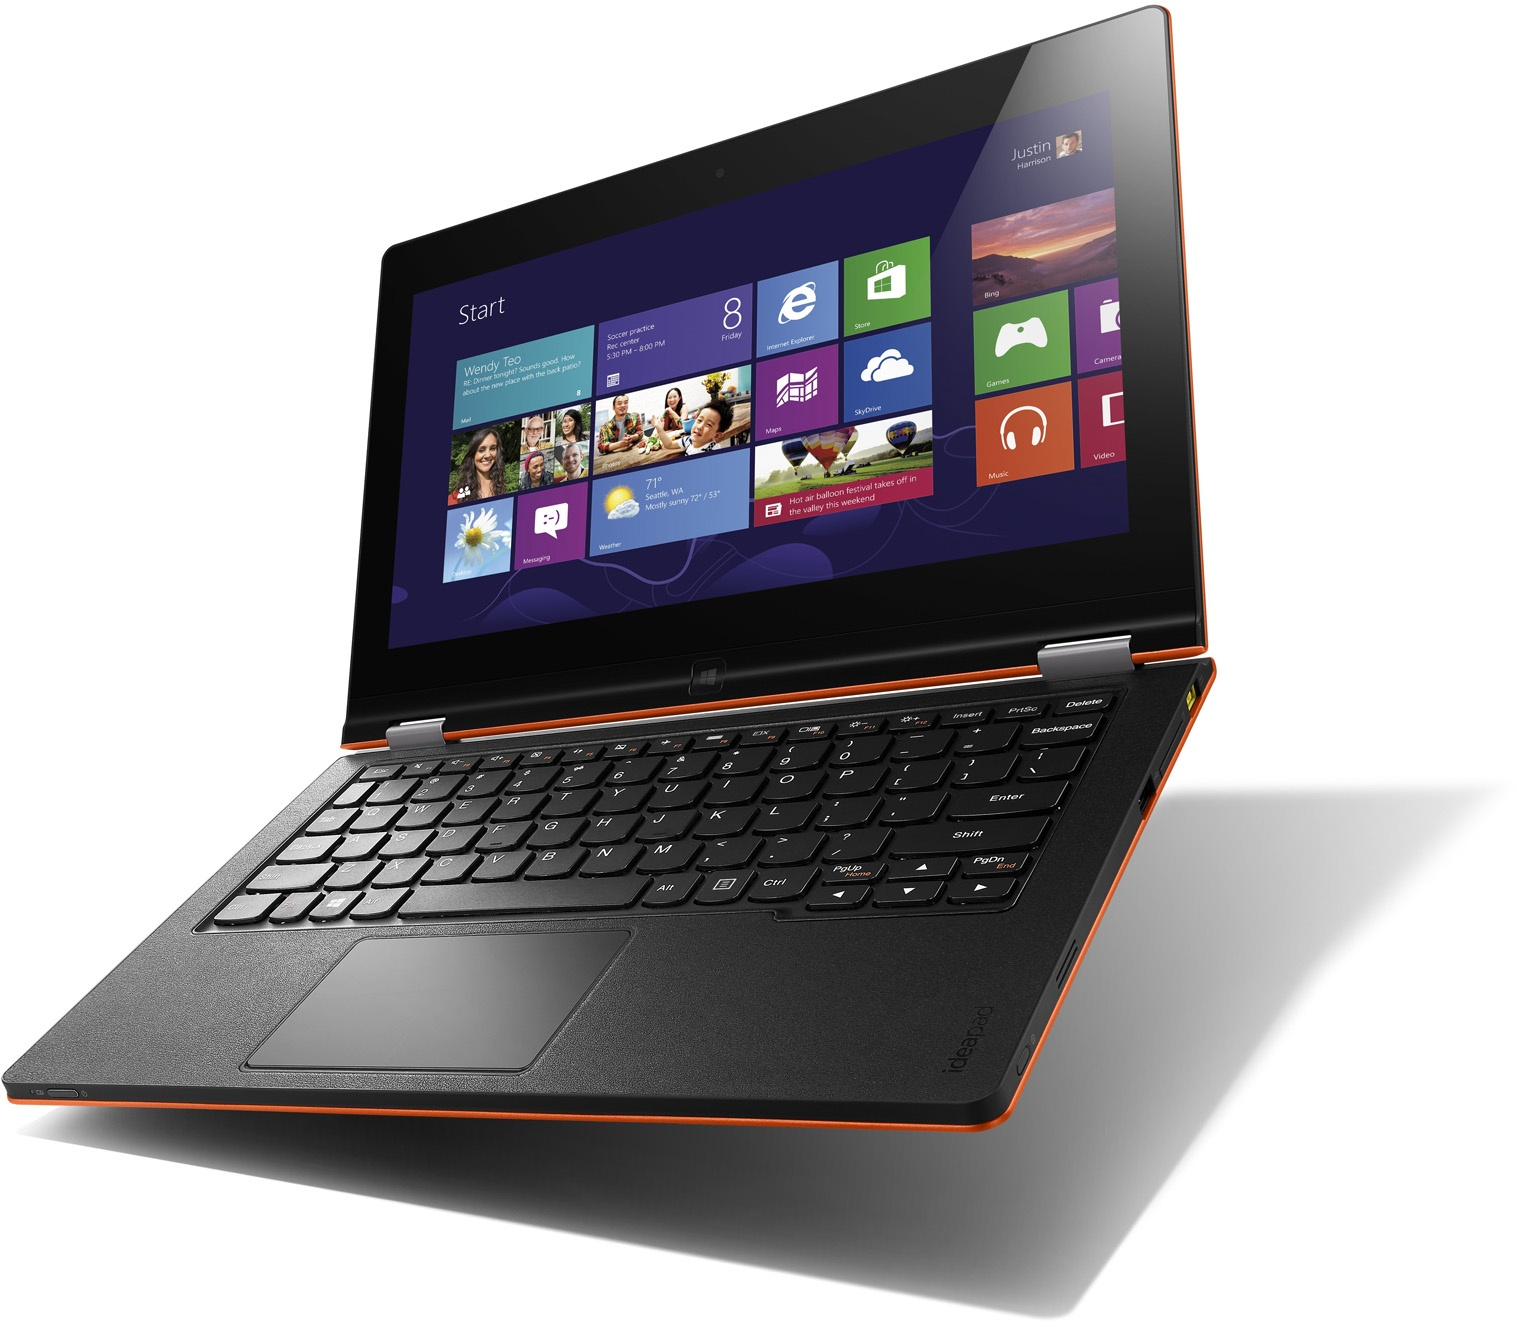 lenovo-ideapad-yoga-11-001